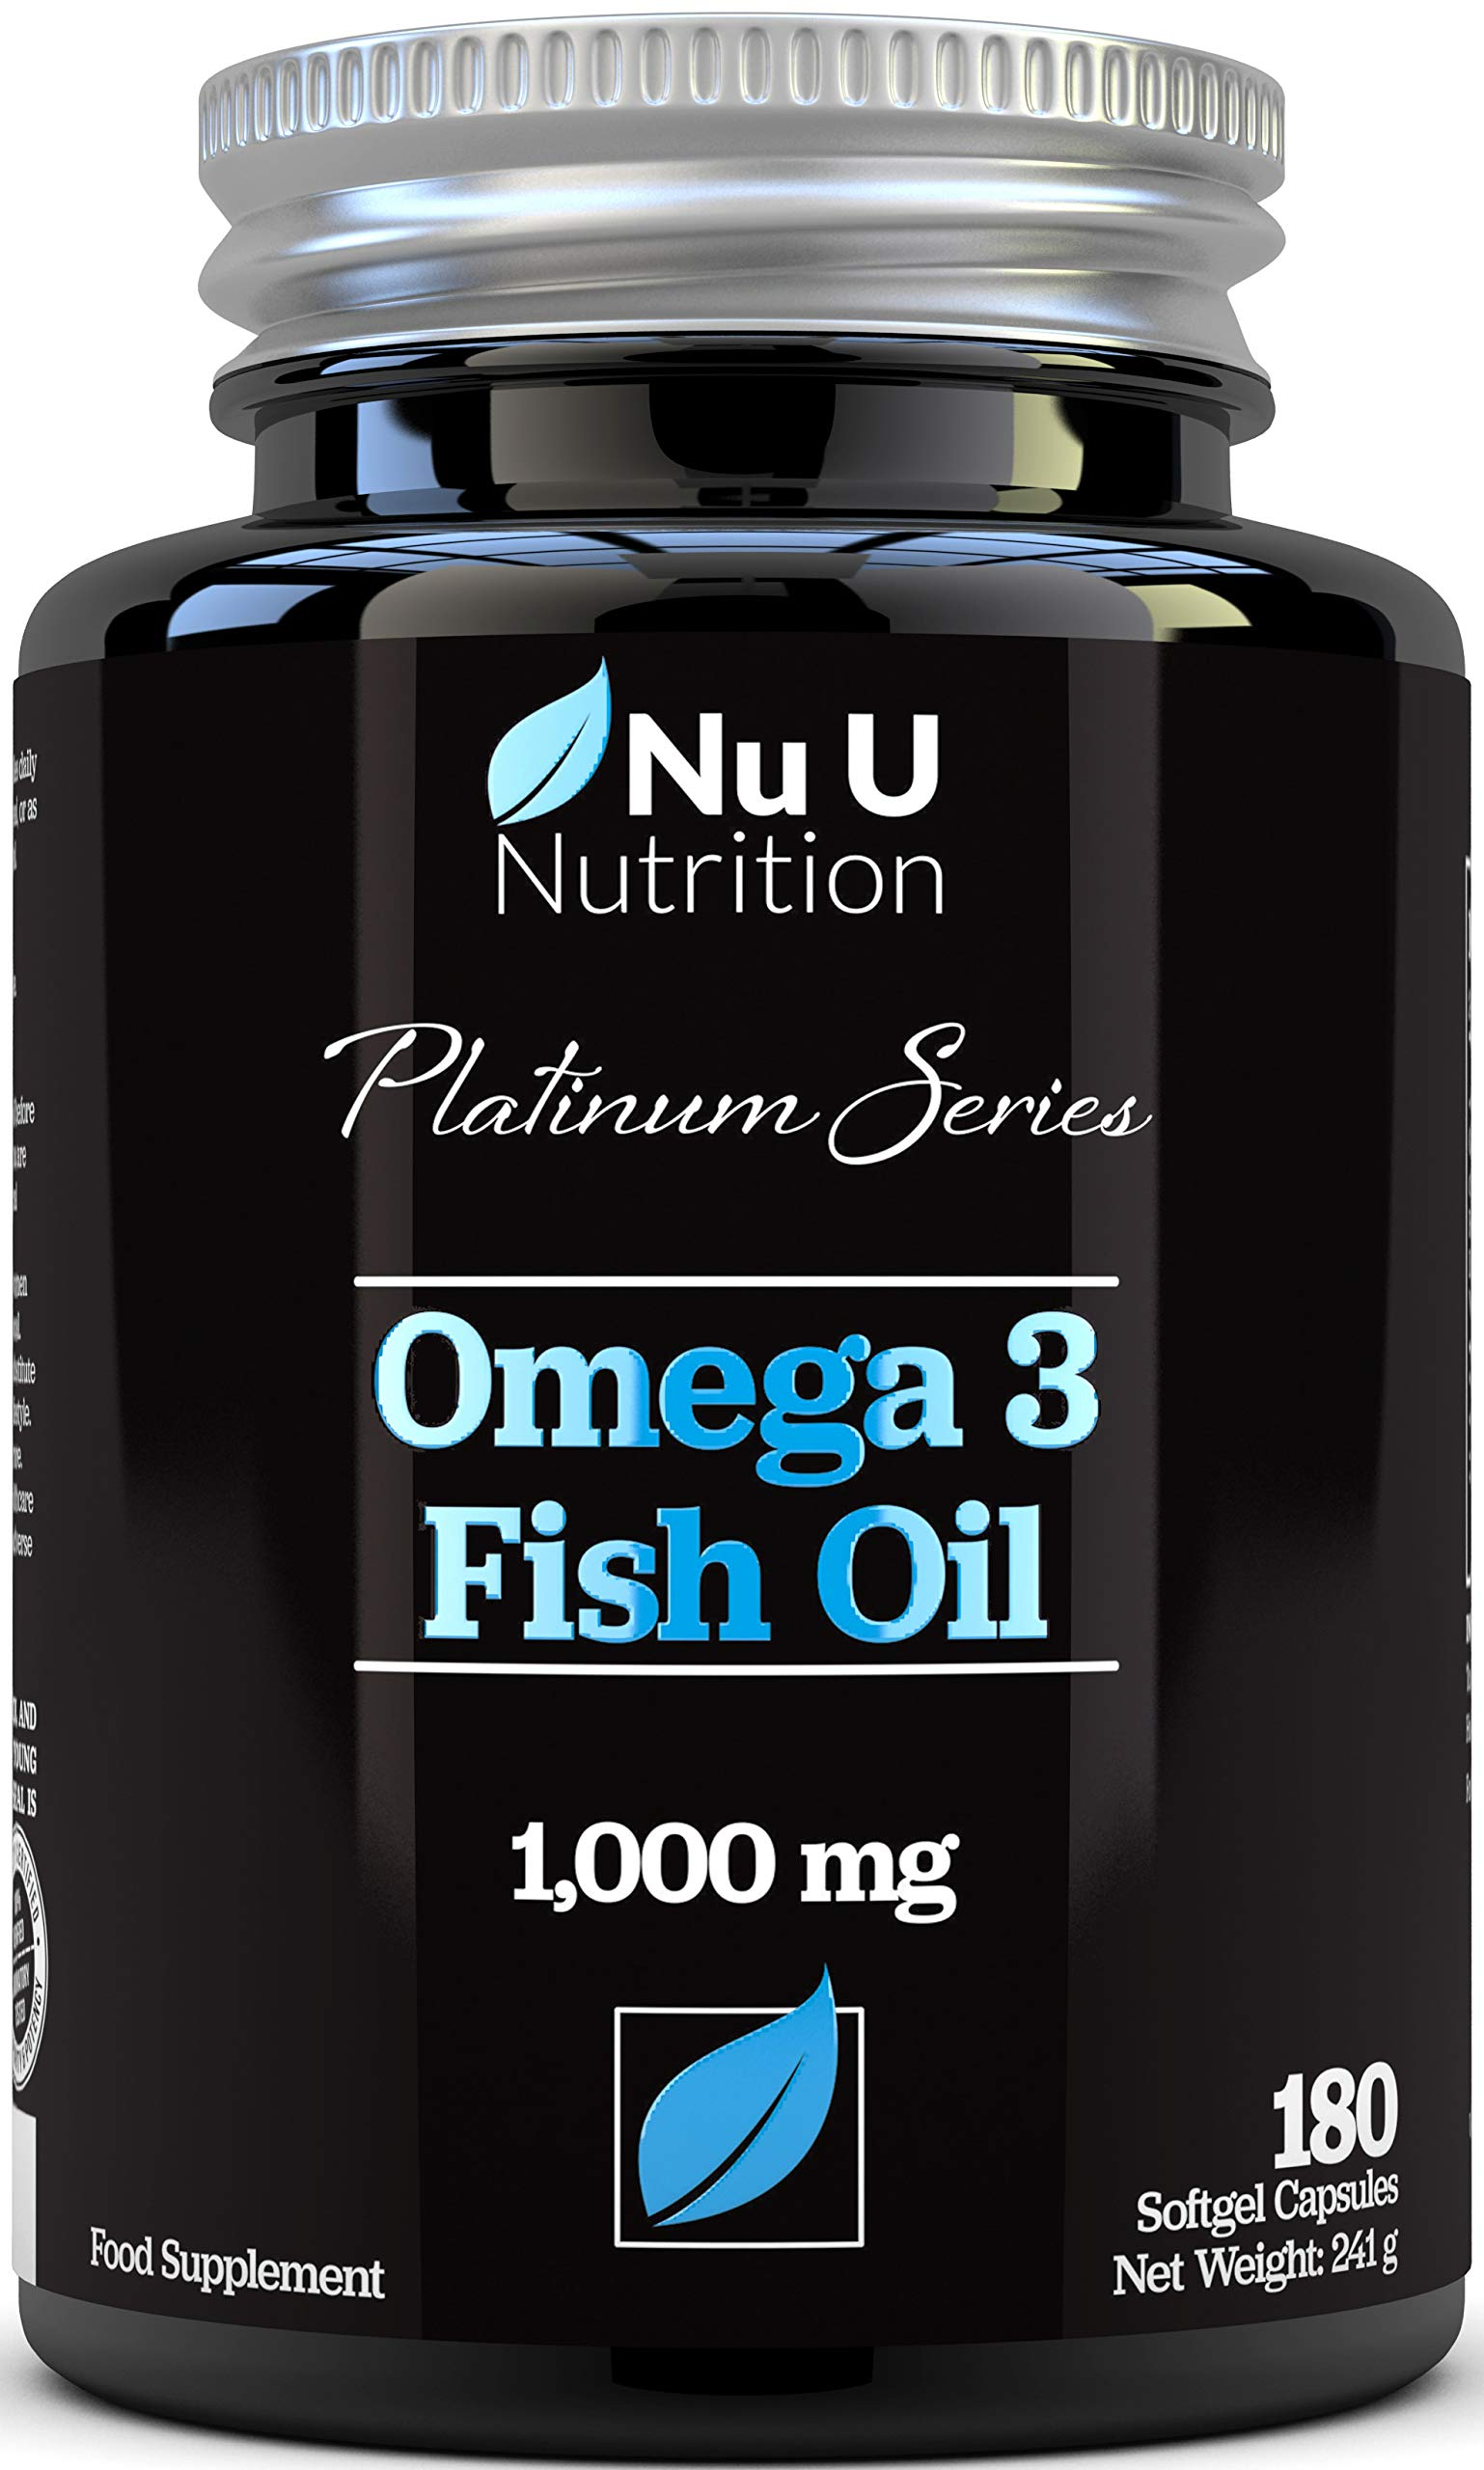 Omega 3 Fish Oil 1000mg Double Strength EPA & DHA Softgel Capsules, 180 (6 Month Supply) Premium Fish Oil Capsules 1000mg, Made in The UK